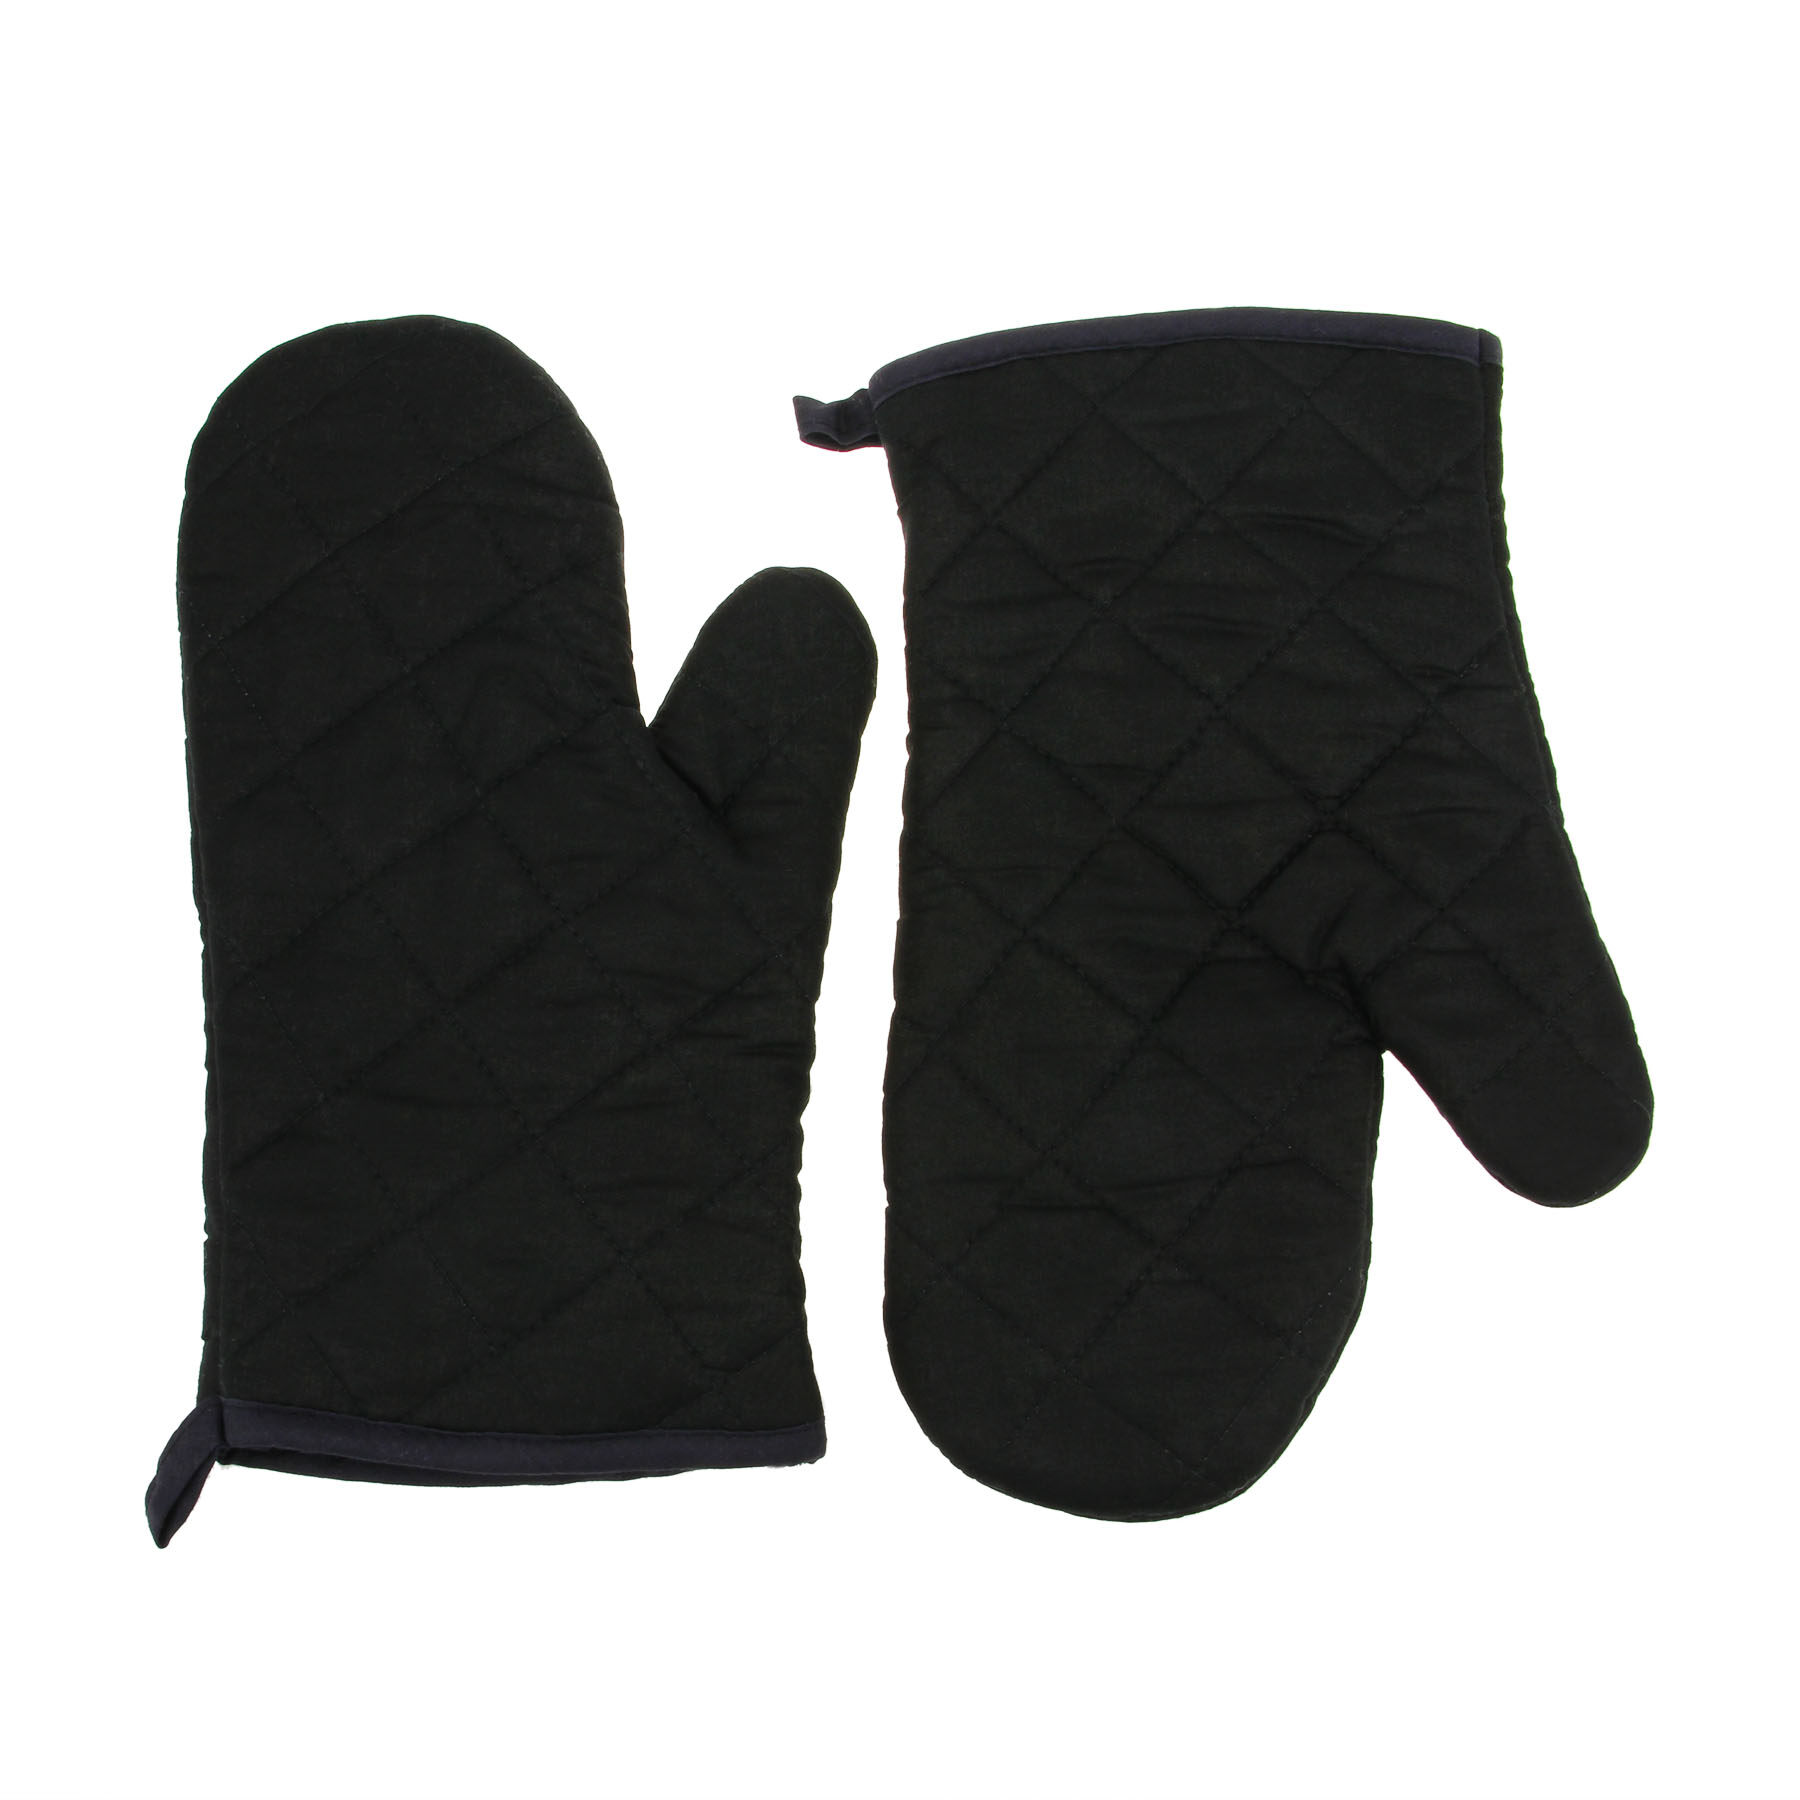 ZB 100% Cotton Thick Home Kitchen Baking Cook Insulated Padded Oven Gloves Heat Resistant Mitten